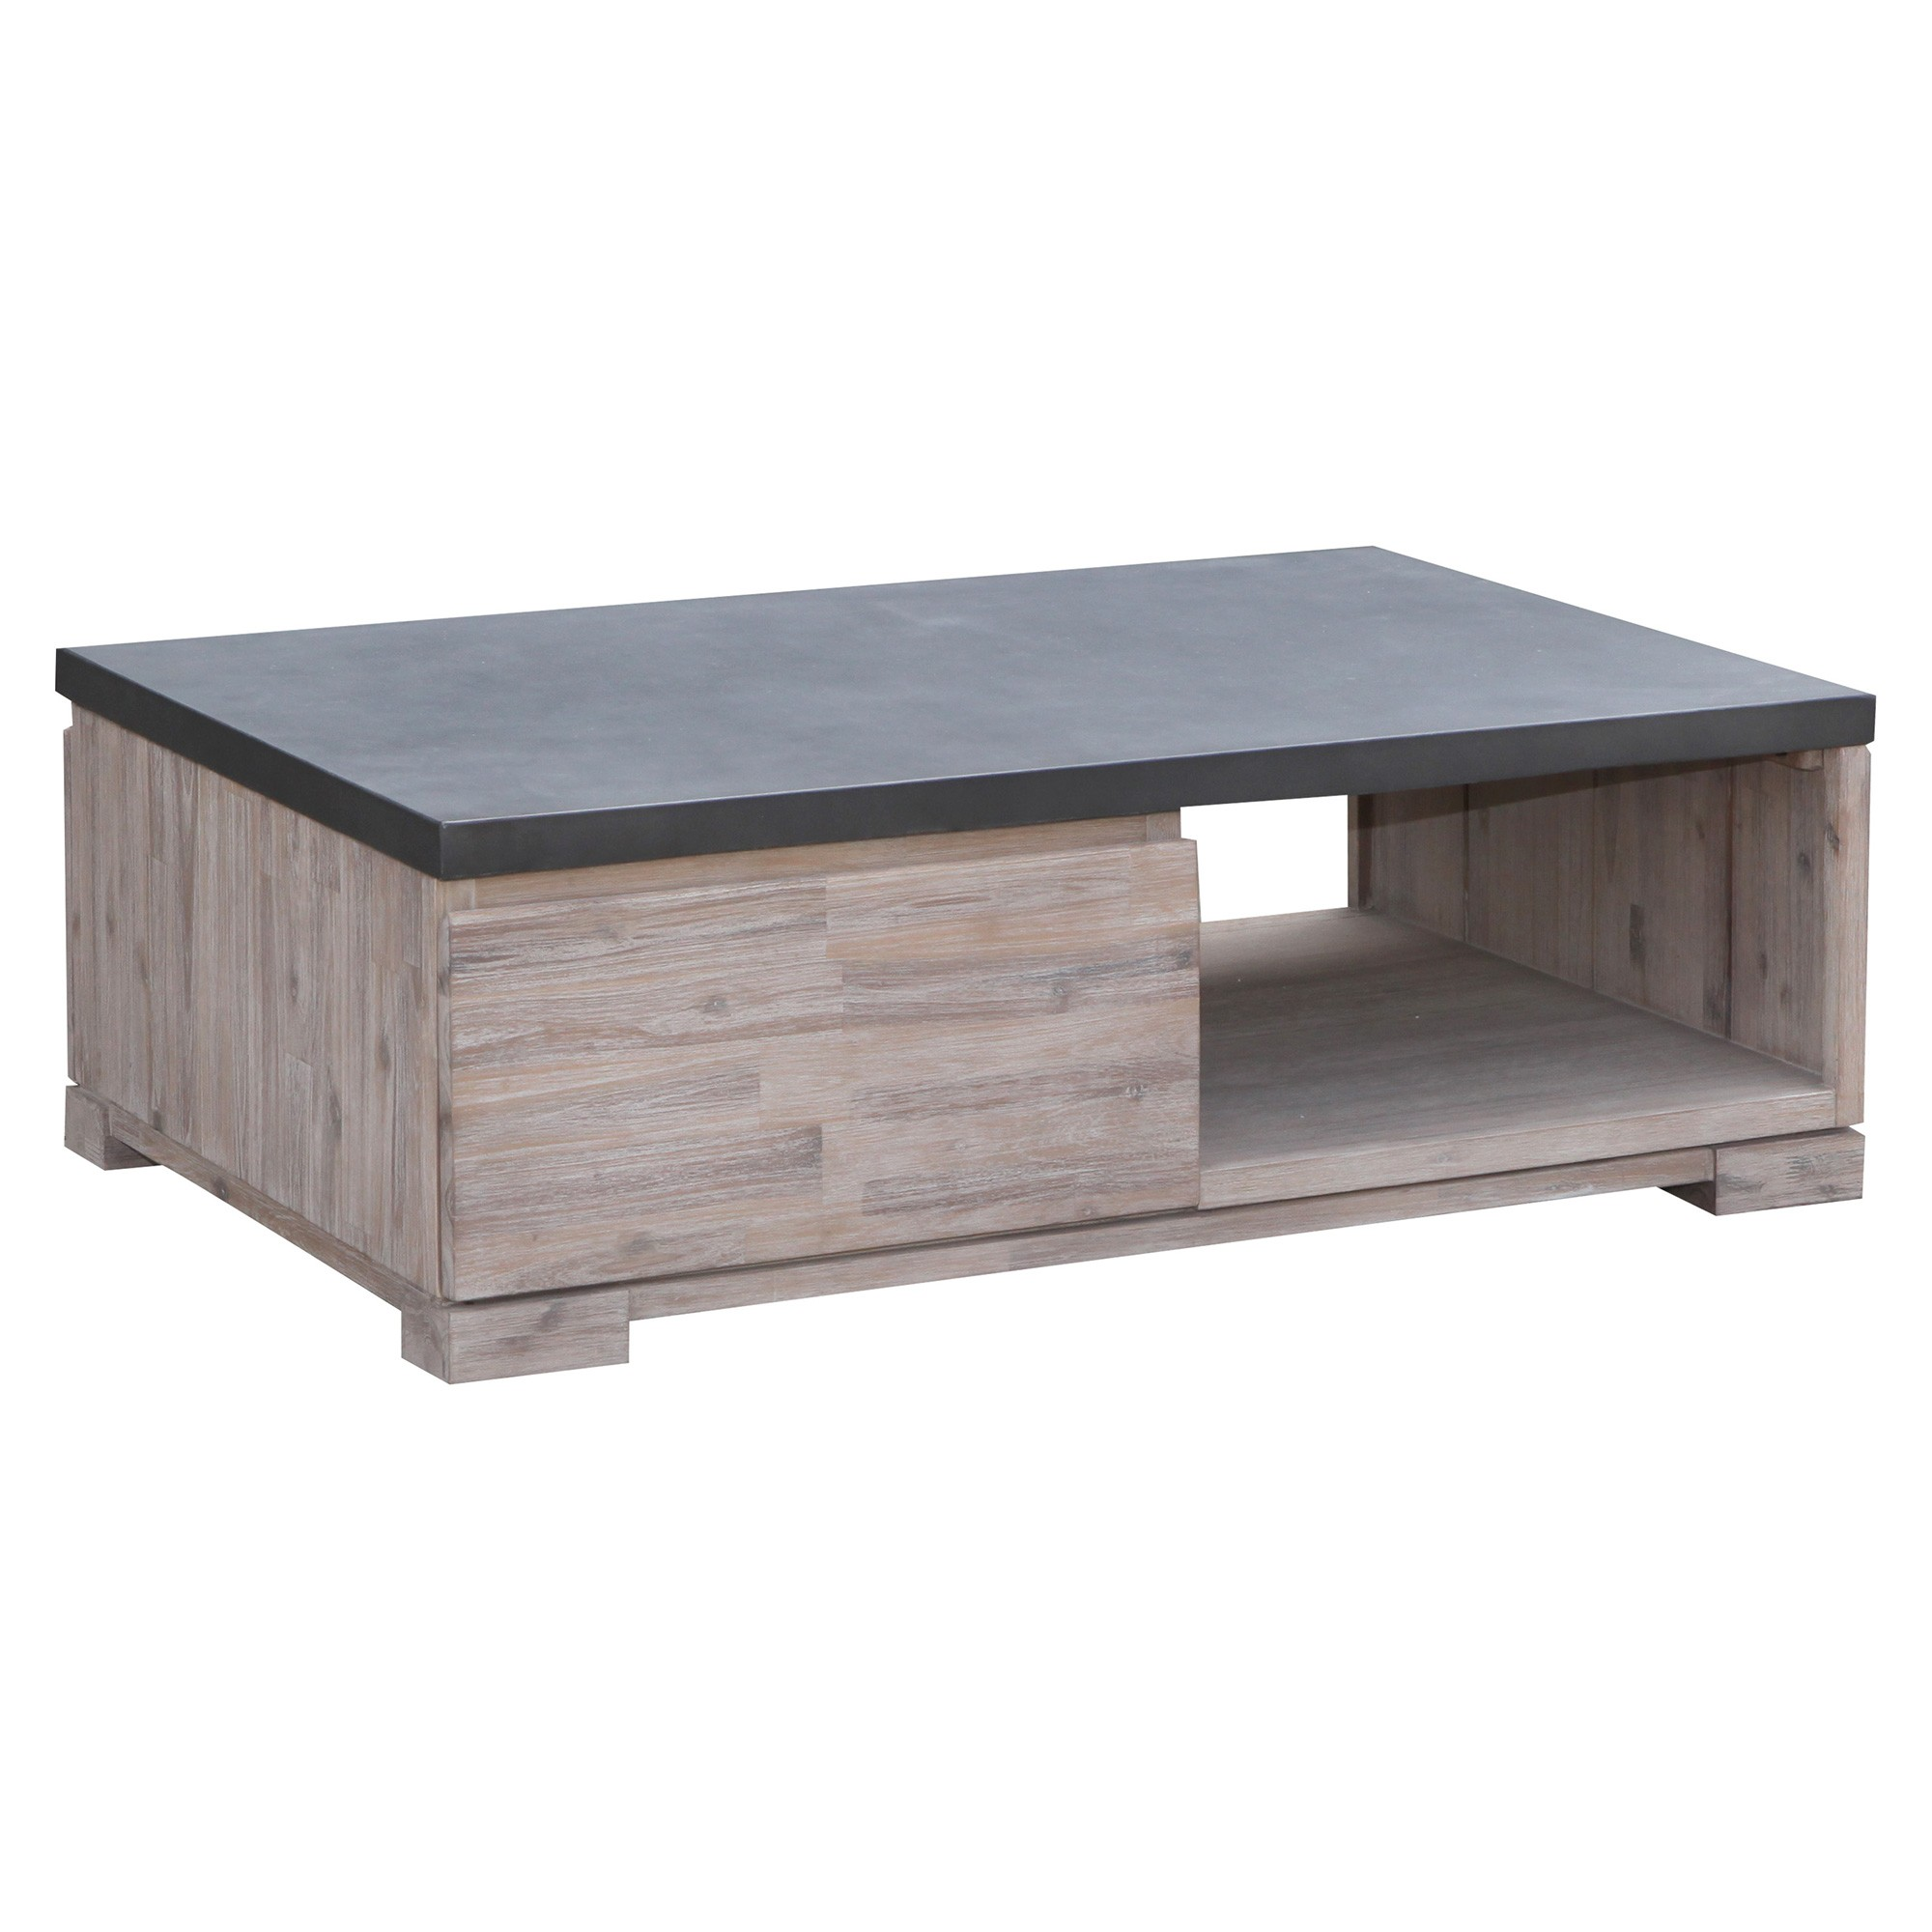 Pesaro Concrete Top Acacia Timber Cofffee Table, 120cm